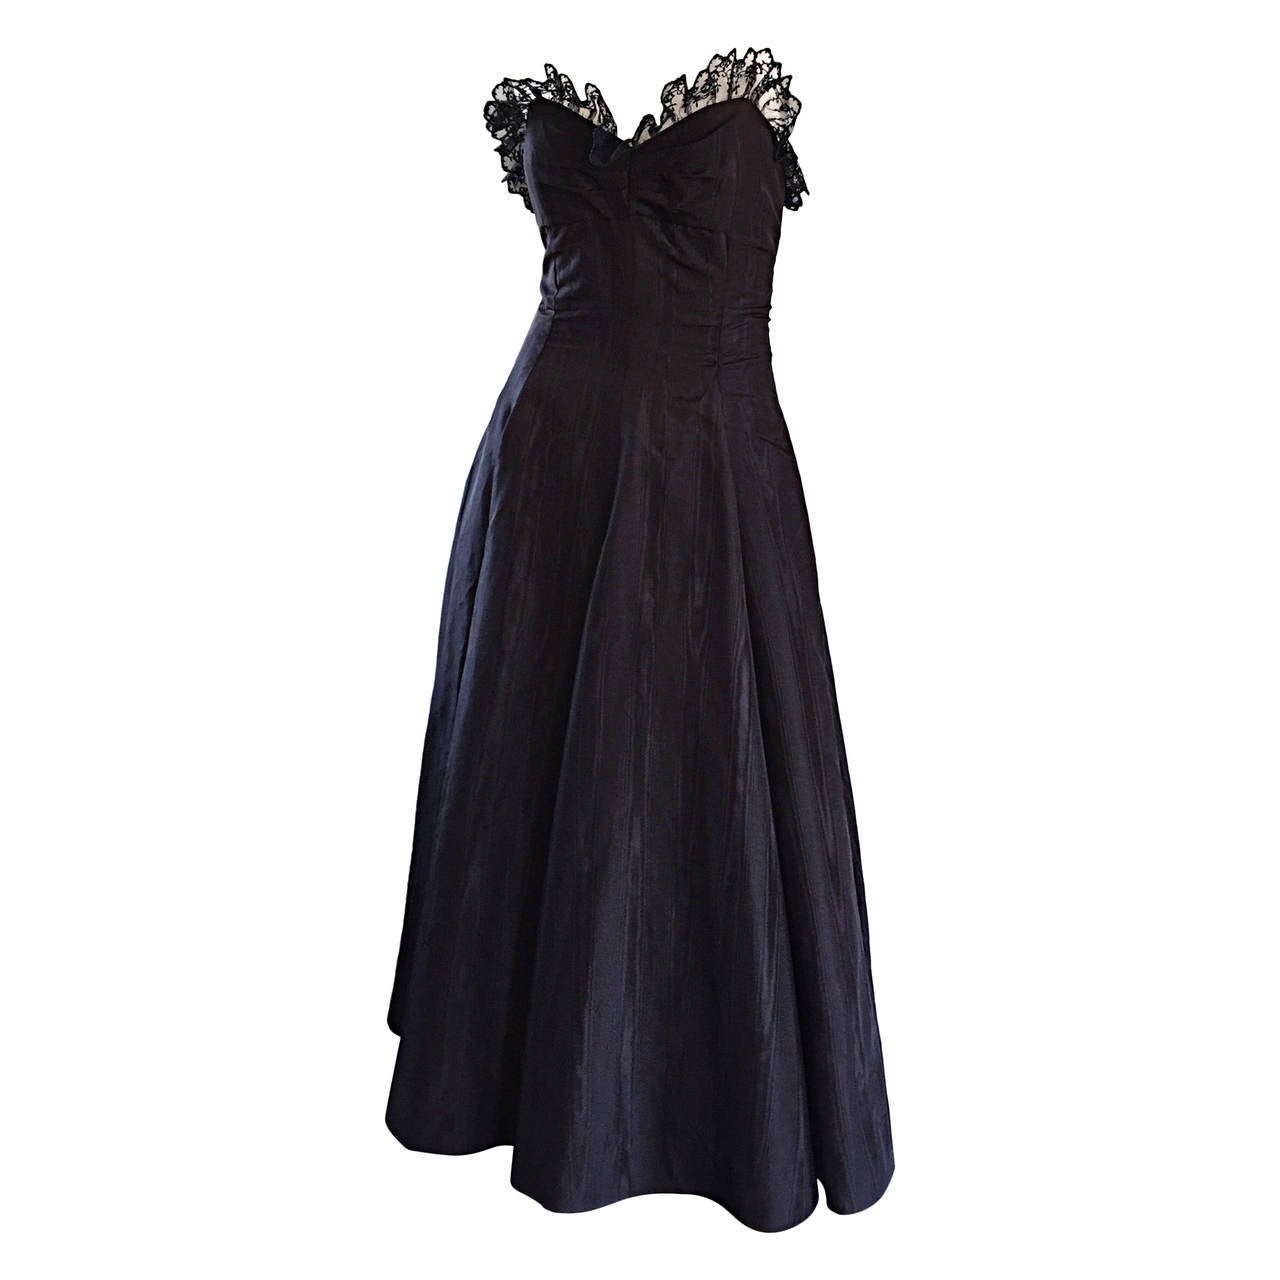 "1950s 50s Black Silk Taffeta + Lace Strapless "" New Look "" Vintage Dress 1"